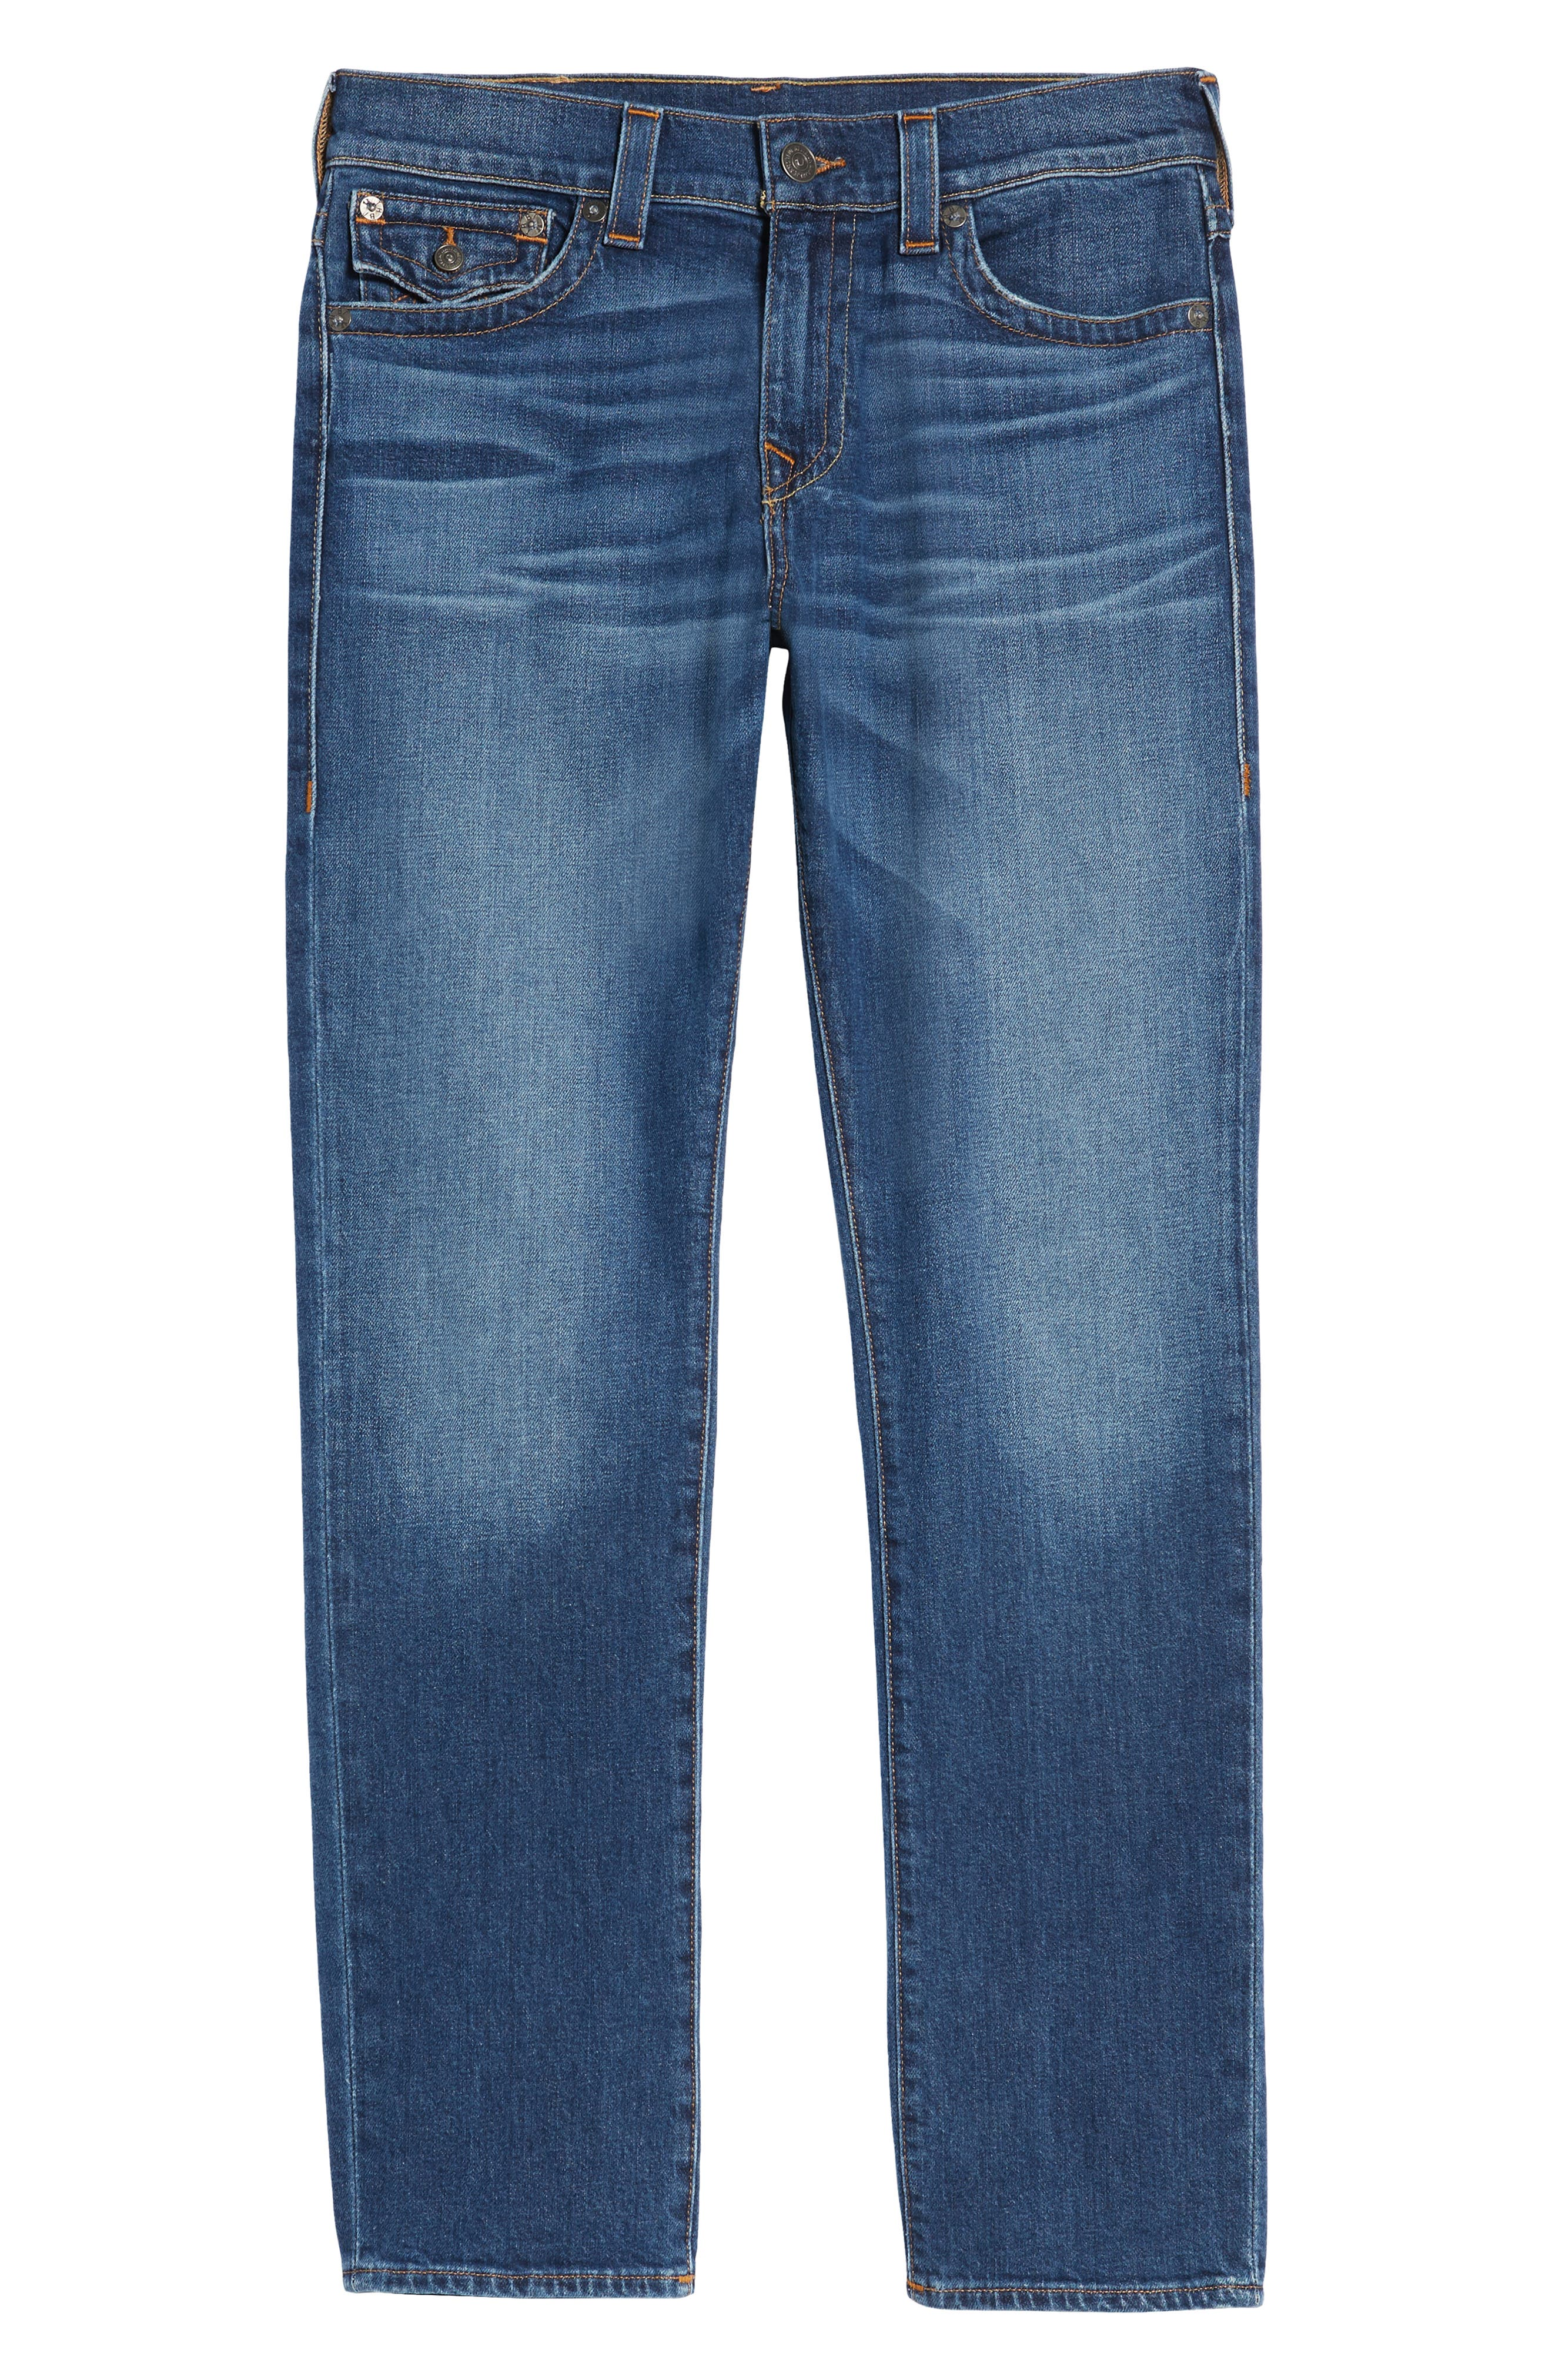 Ricky Relaxed Fit Jeans,                             Alternate thumbnail 6, color,                             Indigo Traveler